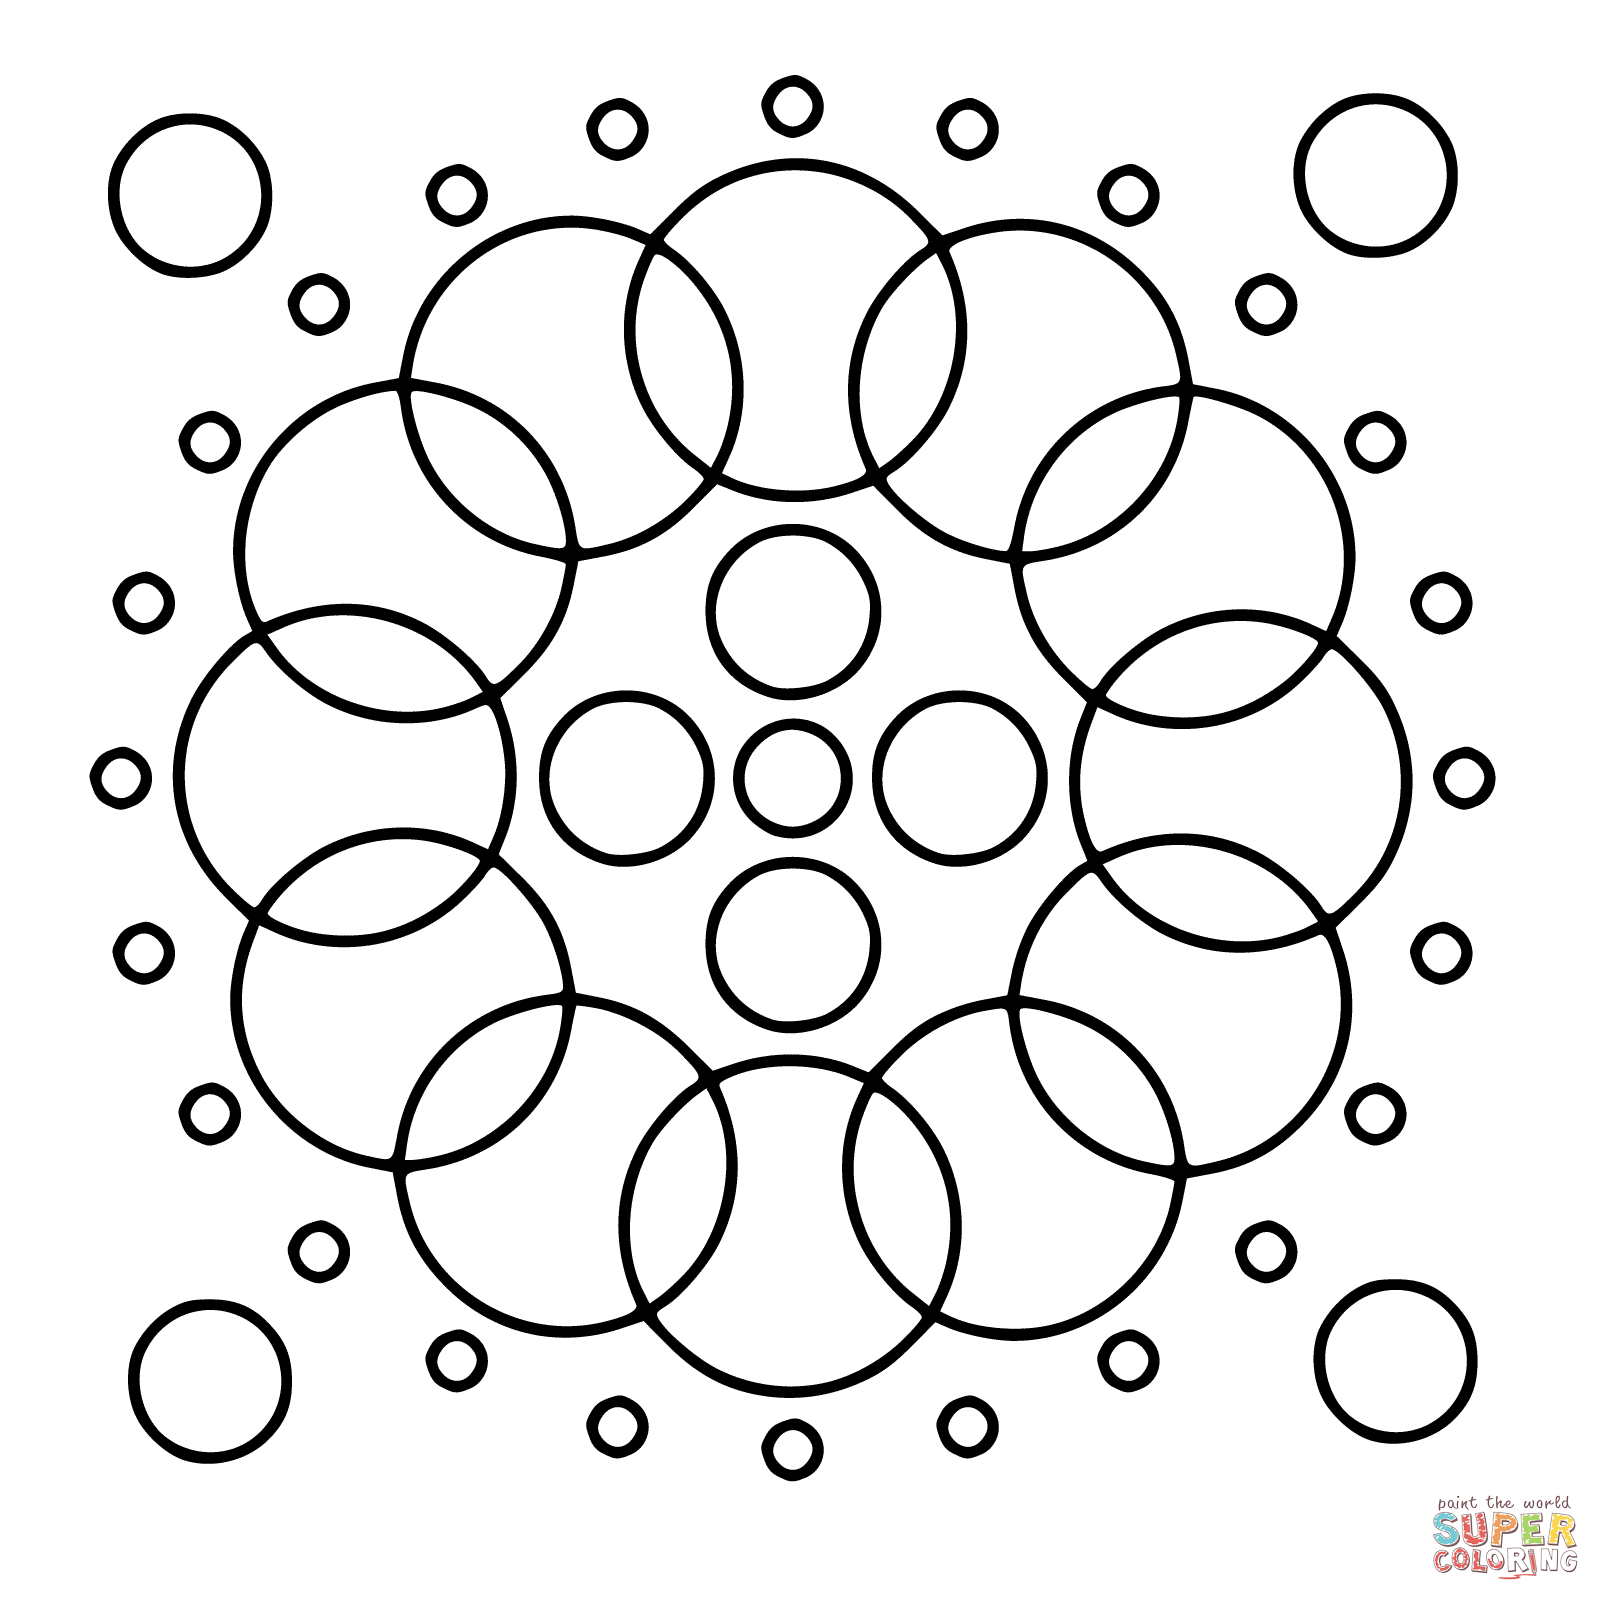 Circle Coloring Page Free Coloring Pages Download | Xsibe triangle ...